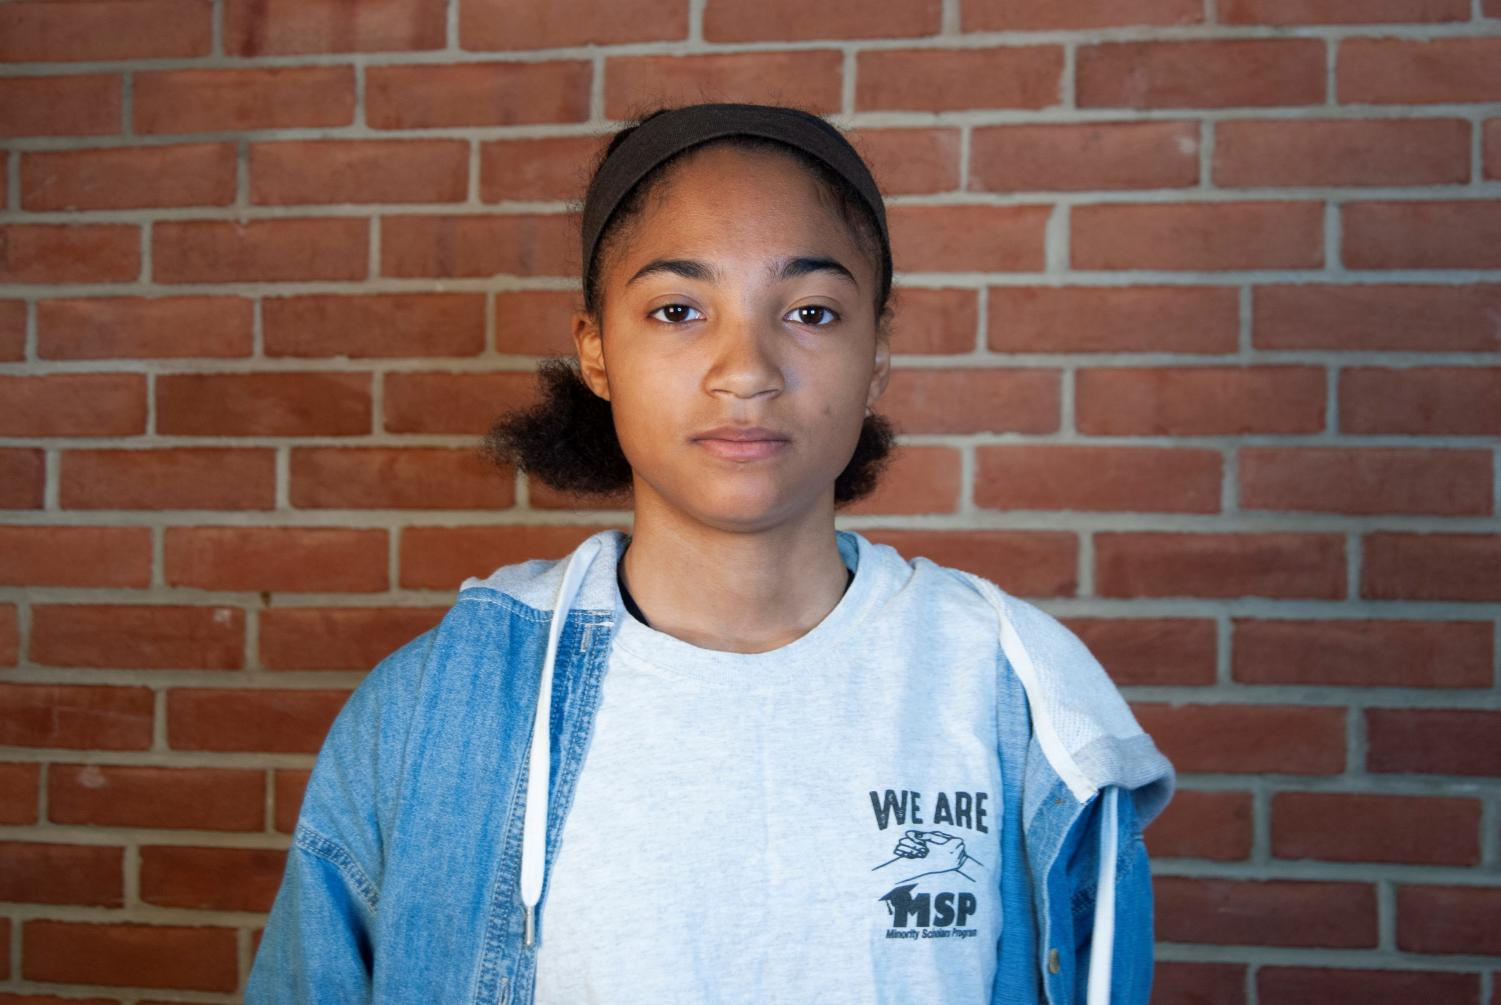 Senior Breanna McDonald started the Whitman chapter of Minority Scholars Program last year with three other students. She is currently working on a racial awareness film project with the club.